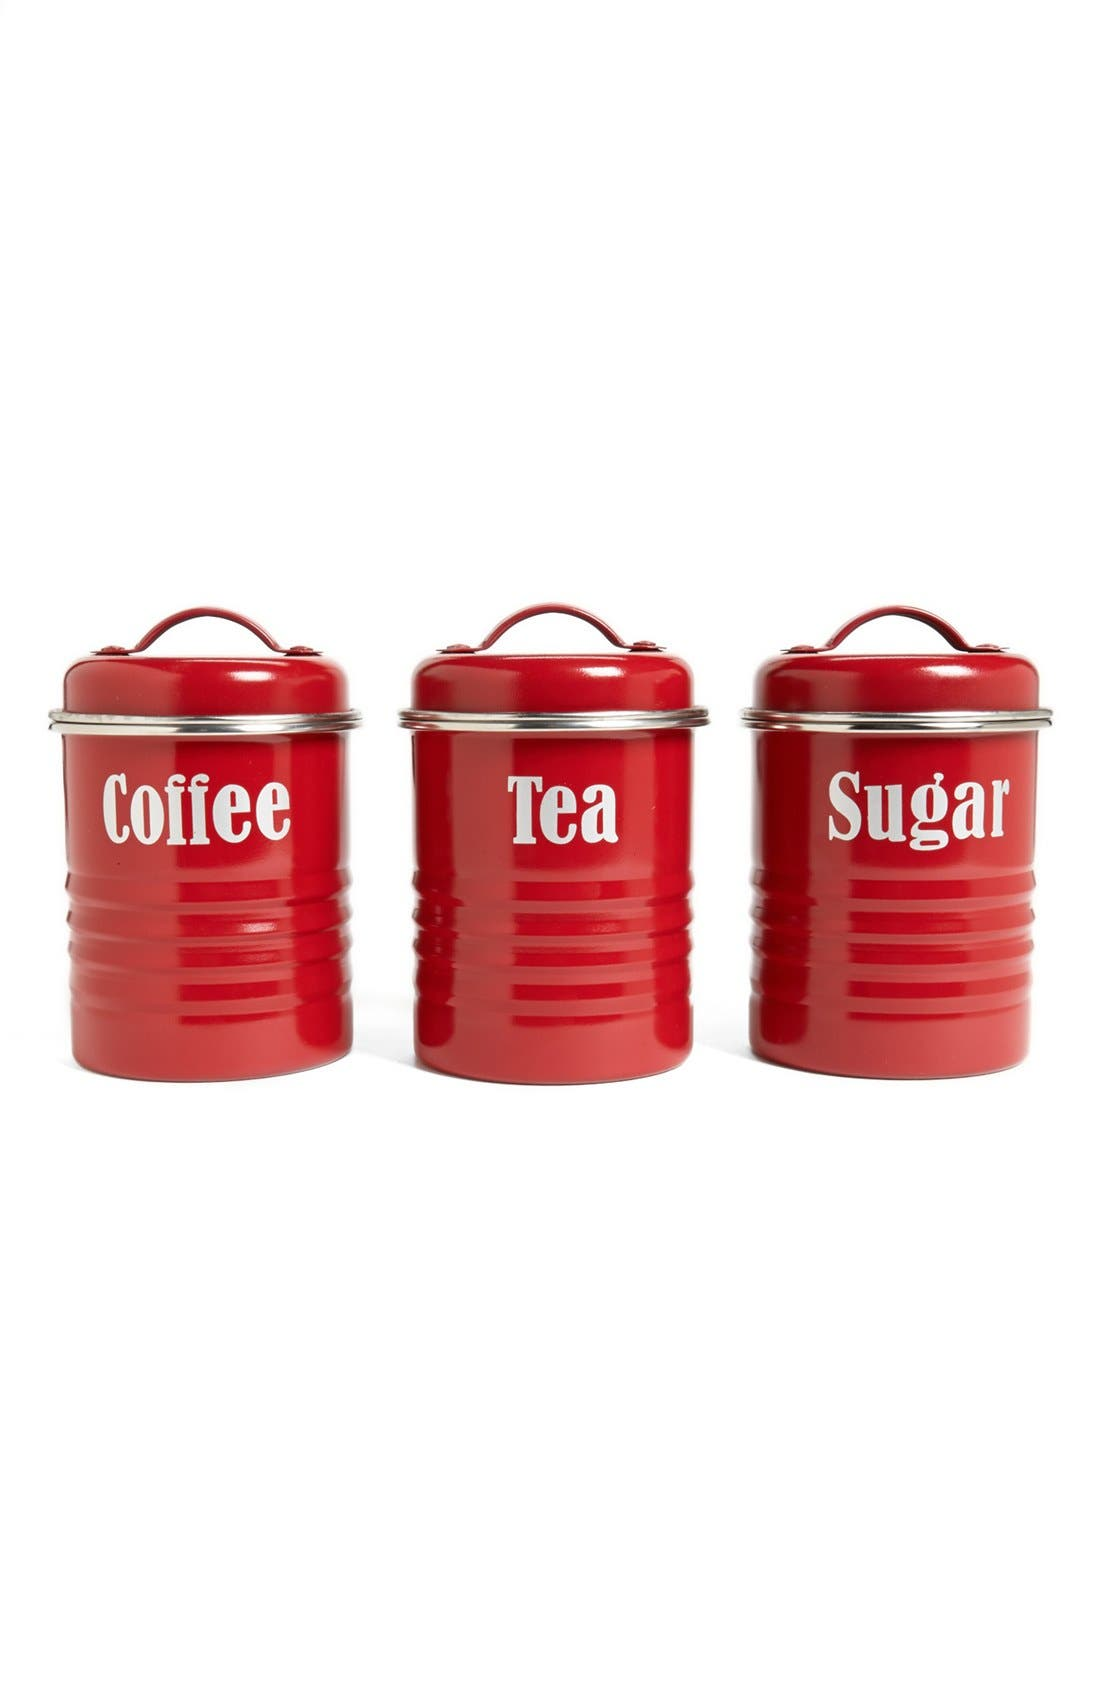 Alternate Image 1 Selected - Typhoon 'Vintage Kitchen' Enameled Tea, Coffee & Sugar Storage Canisters (Set of 3)